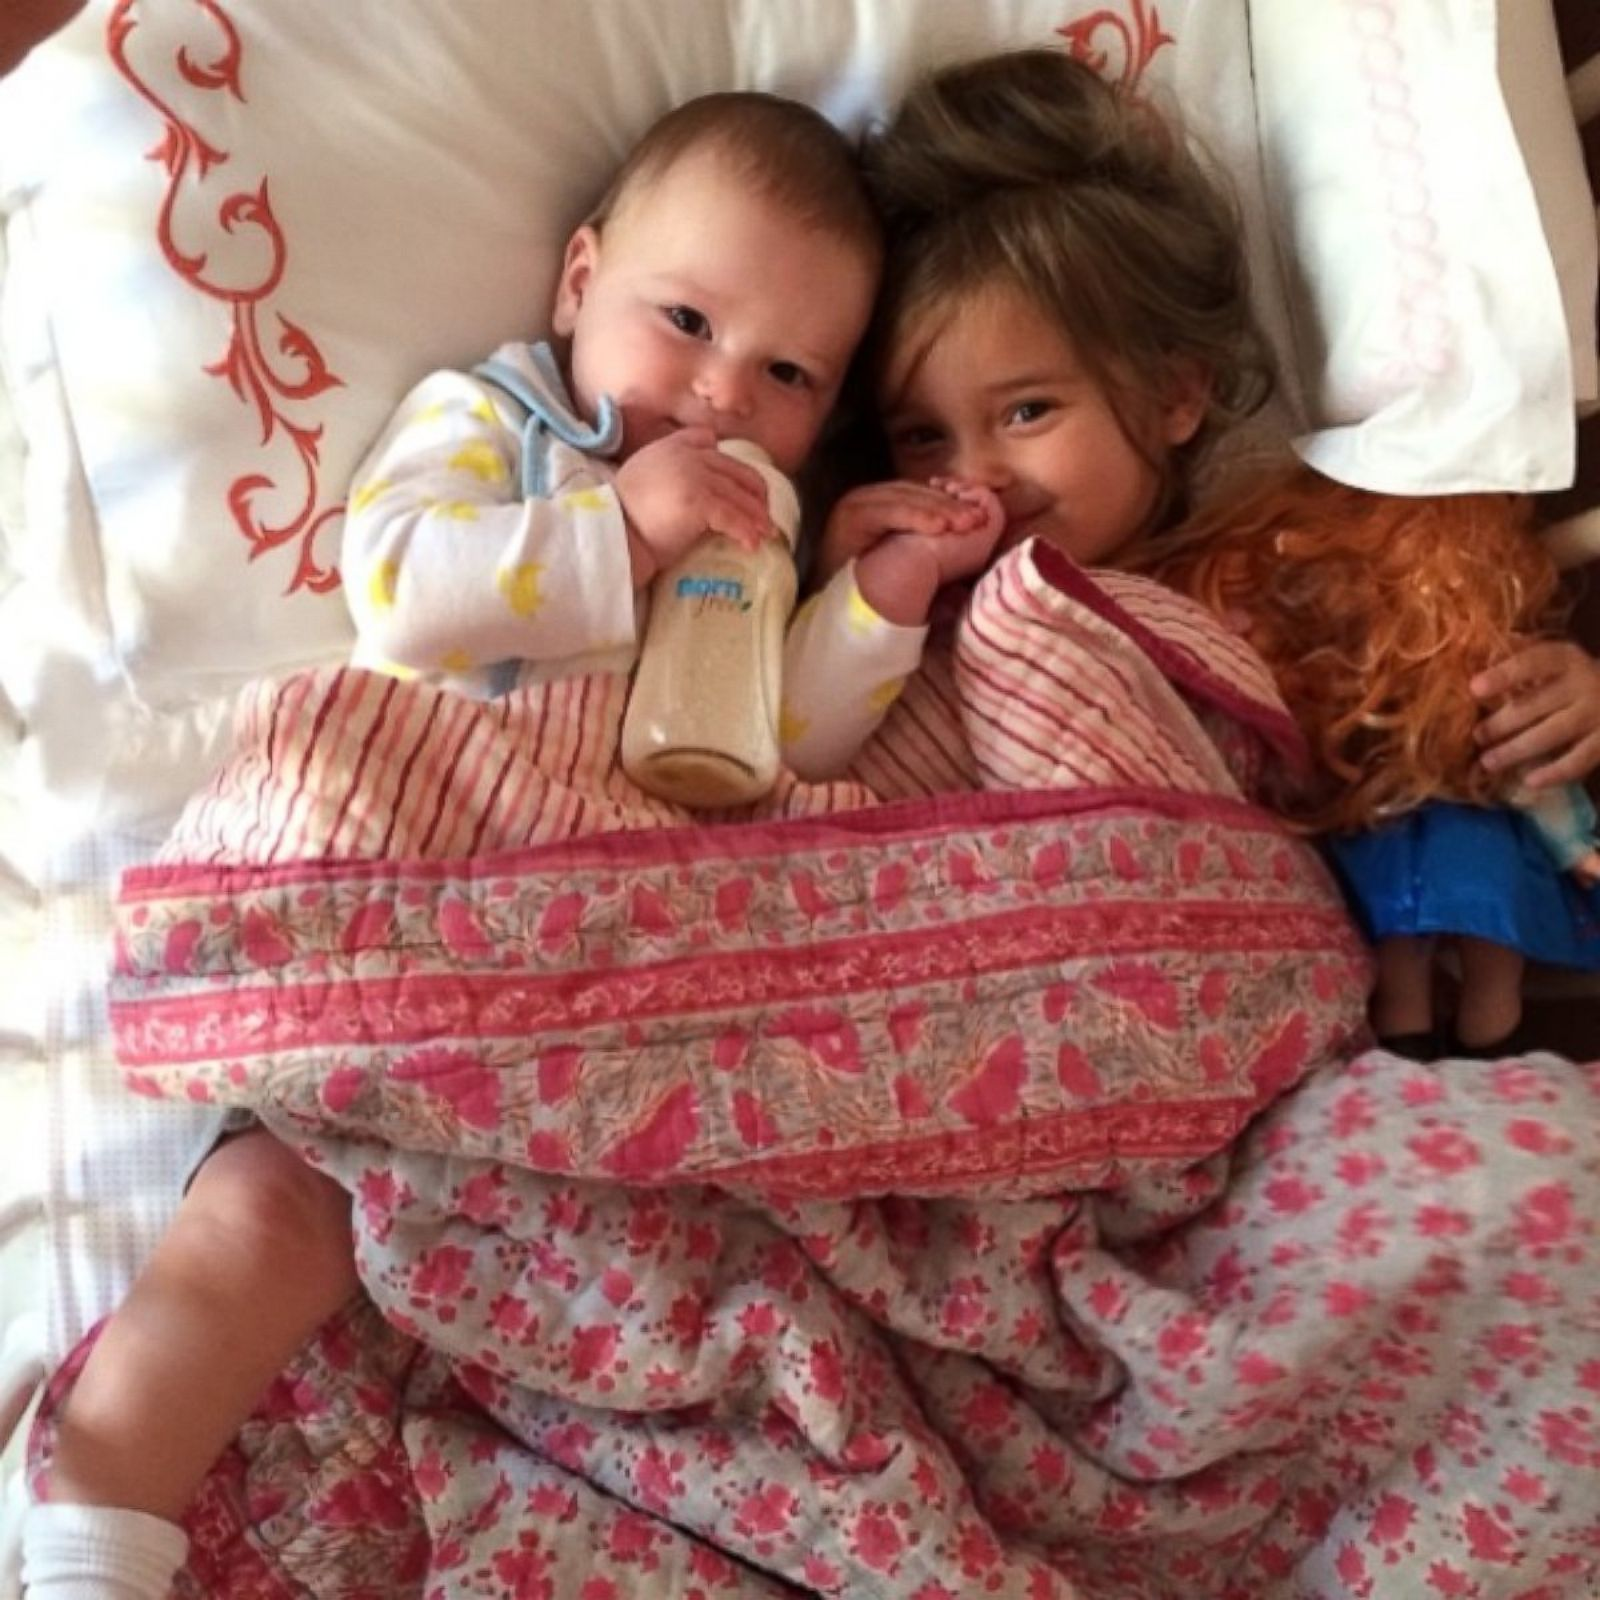 Ivanka Trump's Kids Snuggle in Bed Picture | Hollywood's ...